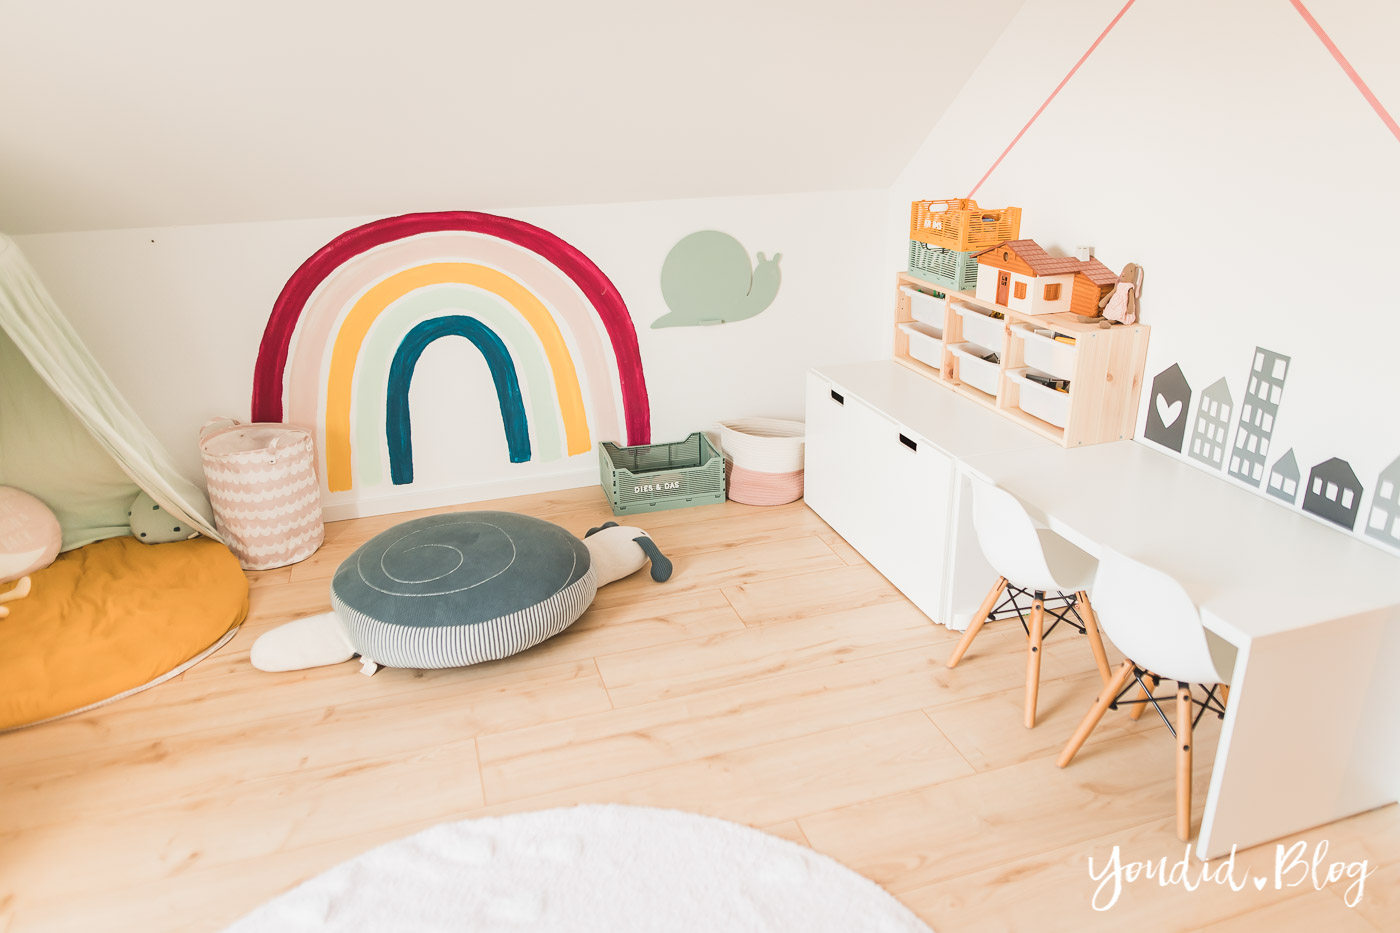 Zwischen Windeln Corona und Einhorn Kneten - Bleib Lässig Zuhause Skandinavisches Kinderzimmer Regenbogen Baldachin Betthimmel IKEA Hack Haus | https://youdid.blog